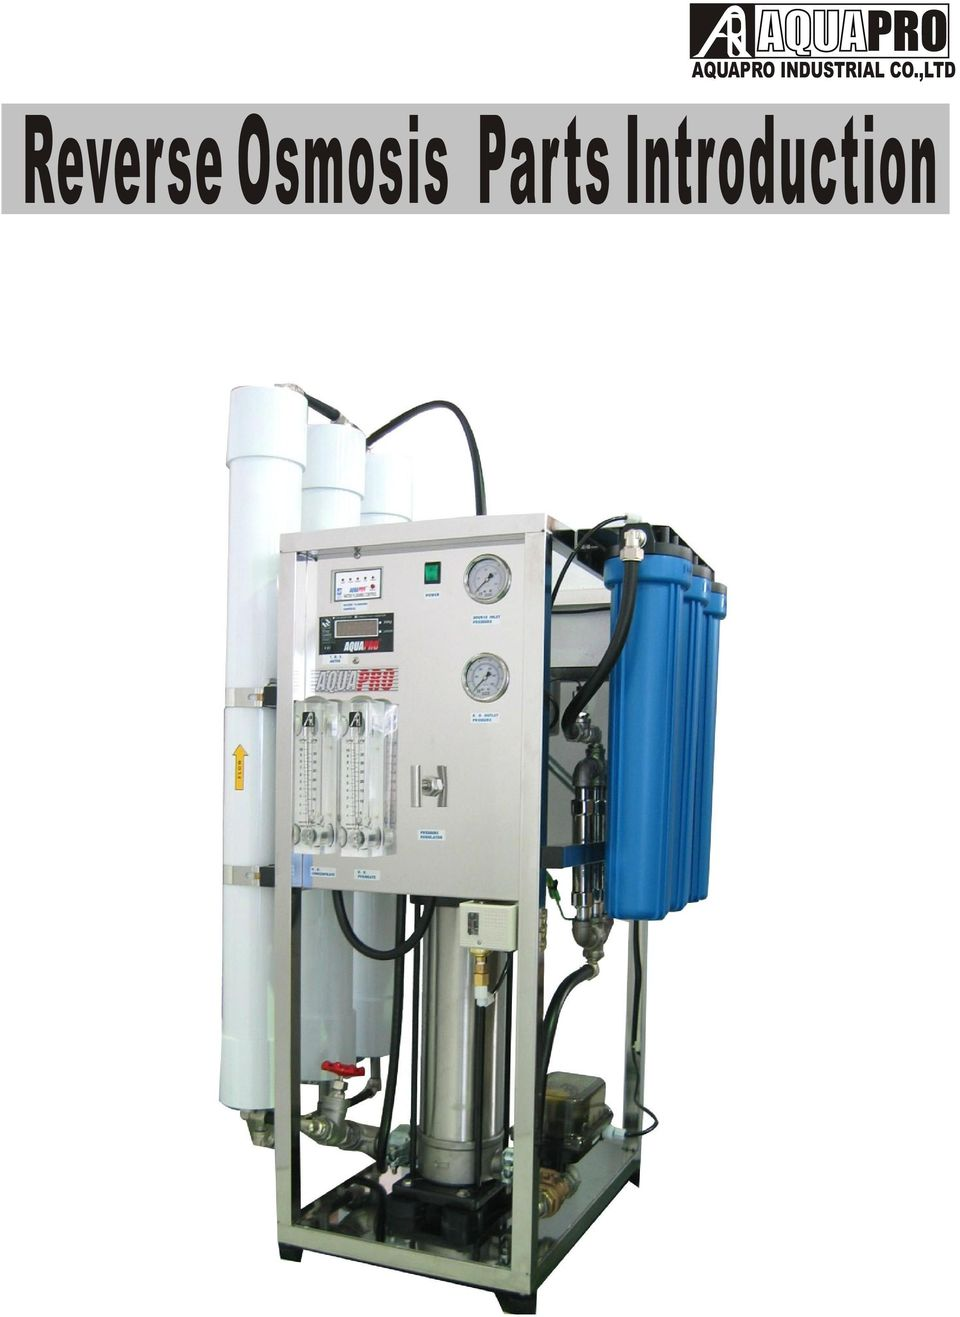 Aquapro Industrial Coltd Reverse Osmosis Parts Introduction Pdf Process Flow Diagram Plant 2 Chart Triple Membrane Water Improver